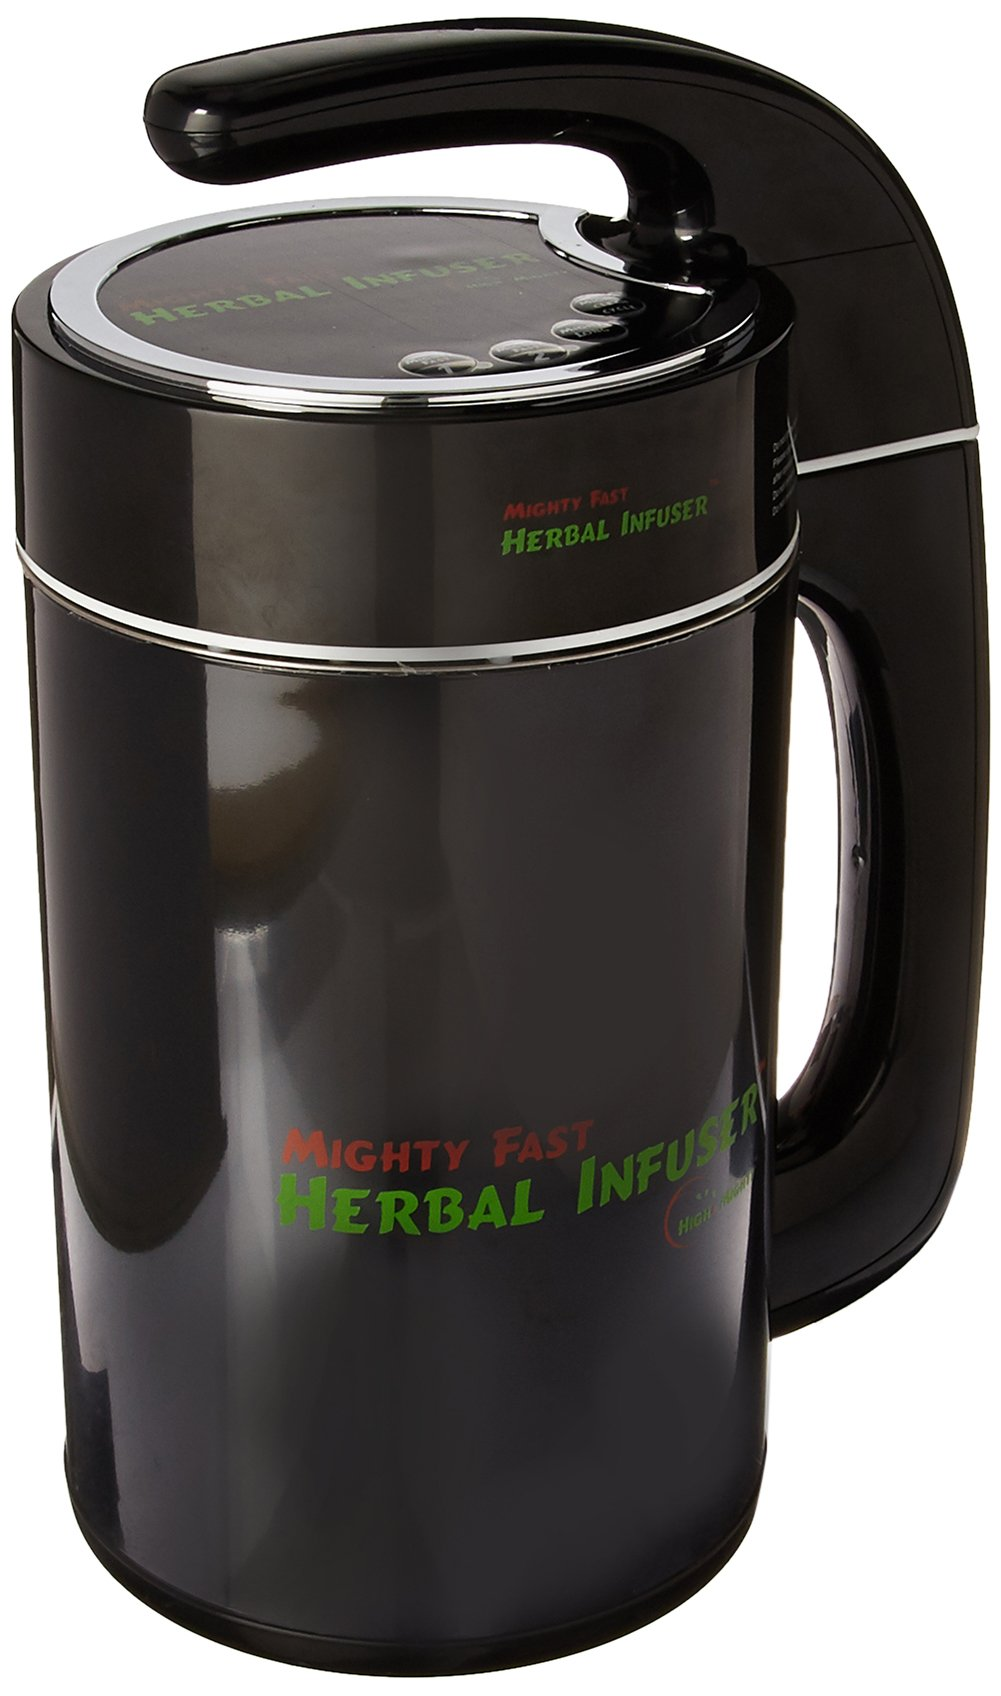 Mighty Fast Herbal Infuser by Mighty Fast Herbal Infuser (Image #1)